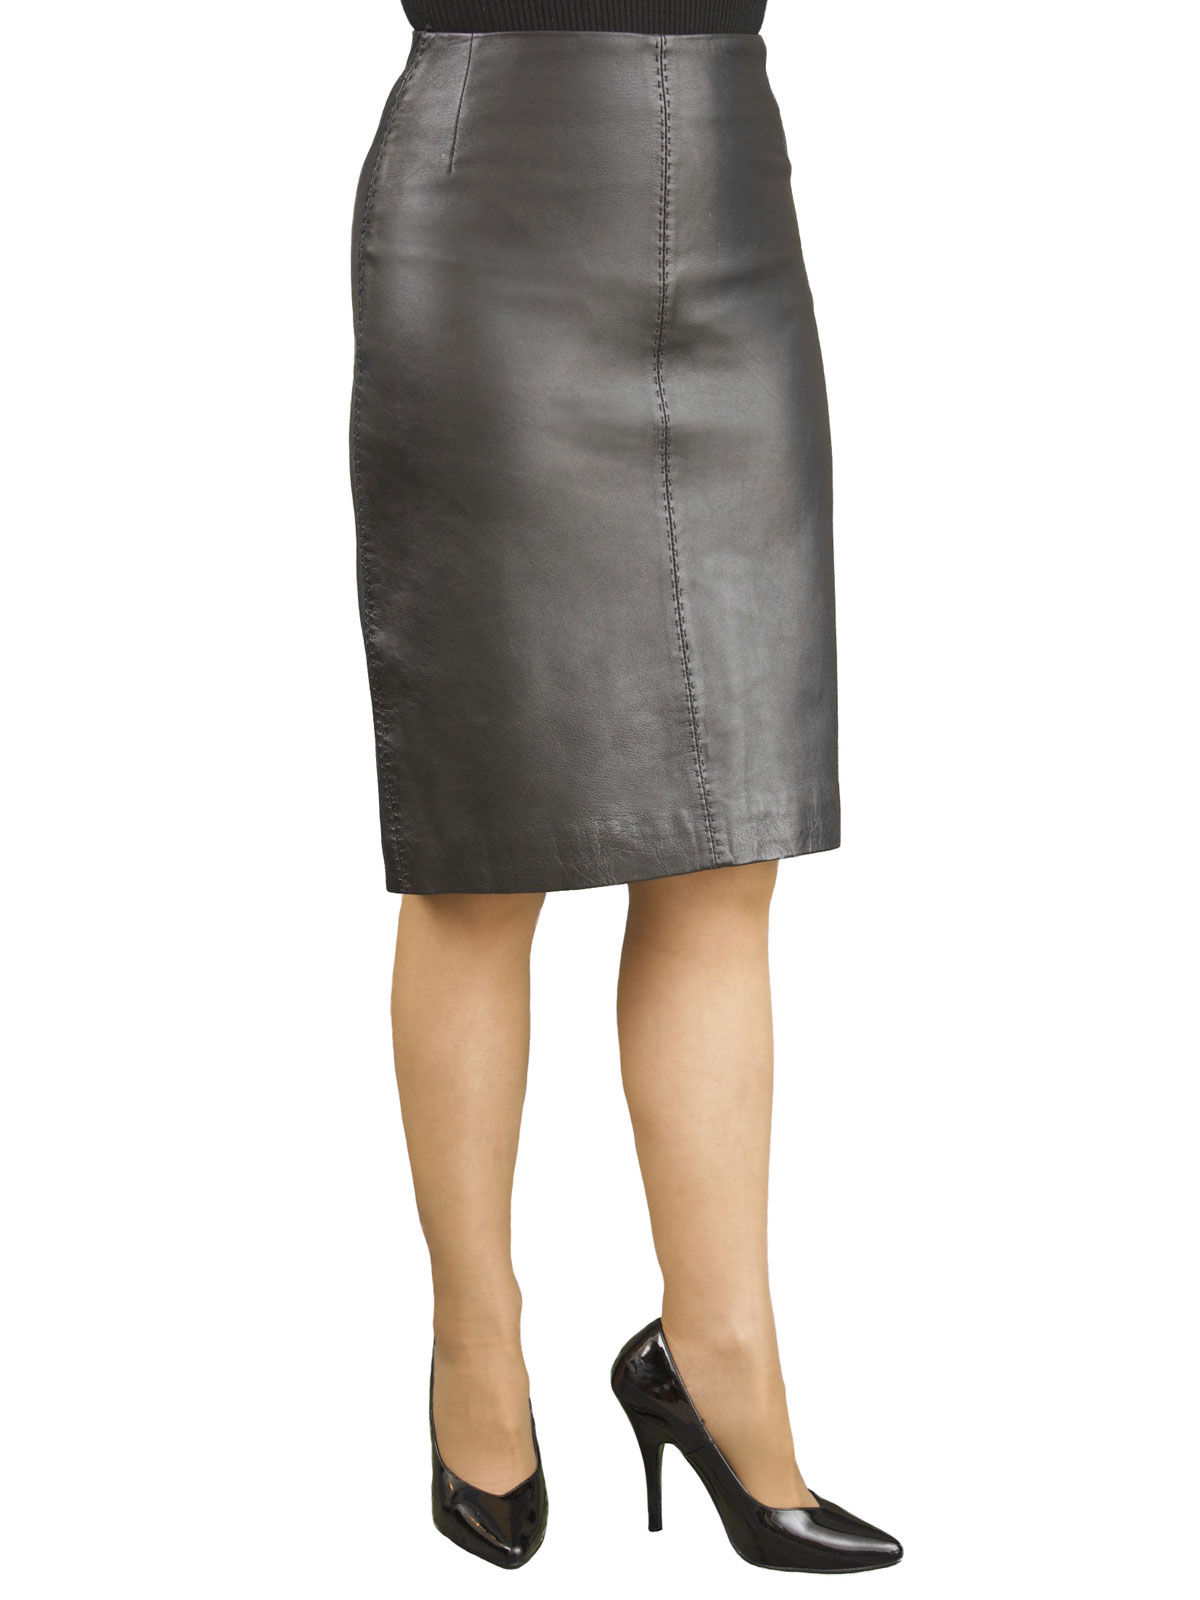 Luxury Leather Pencil Skirt with back split - Tout Ensemble